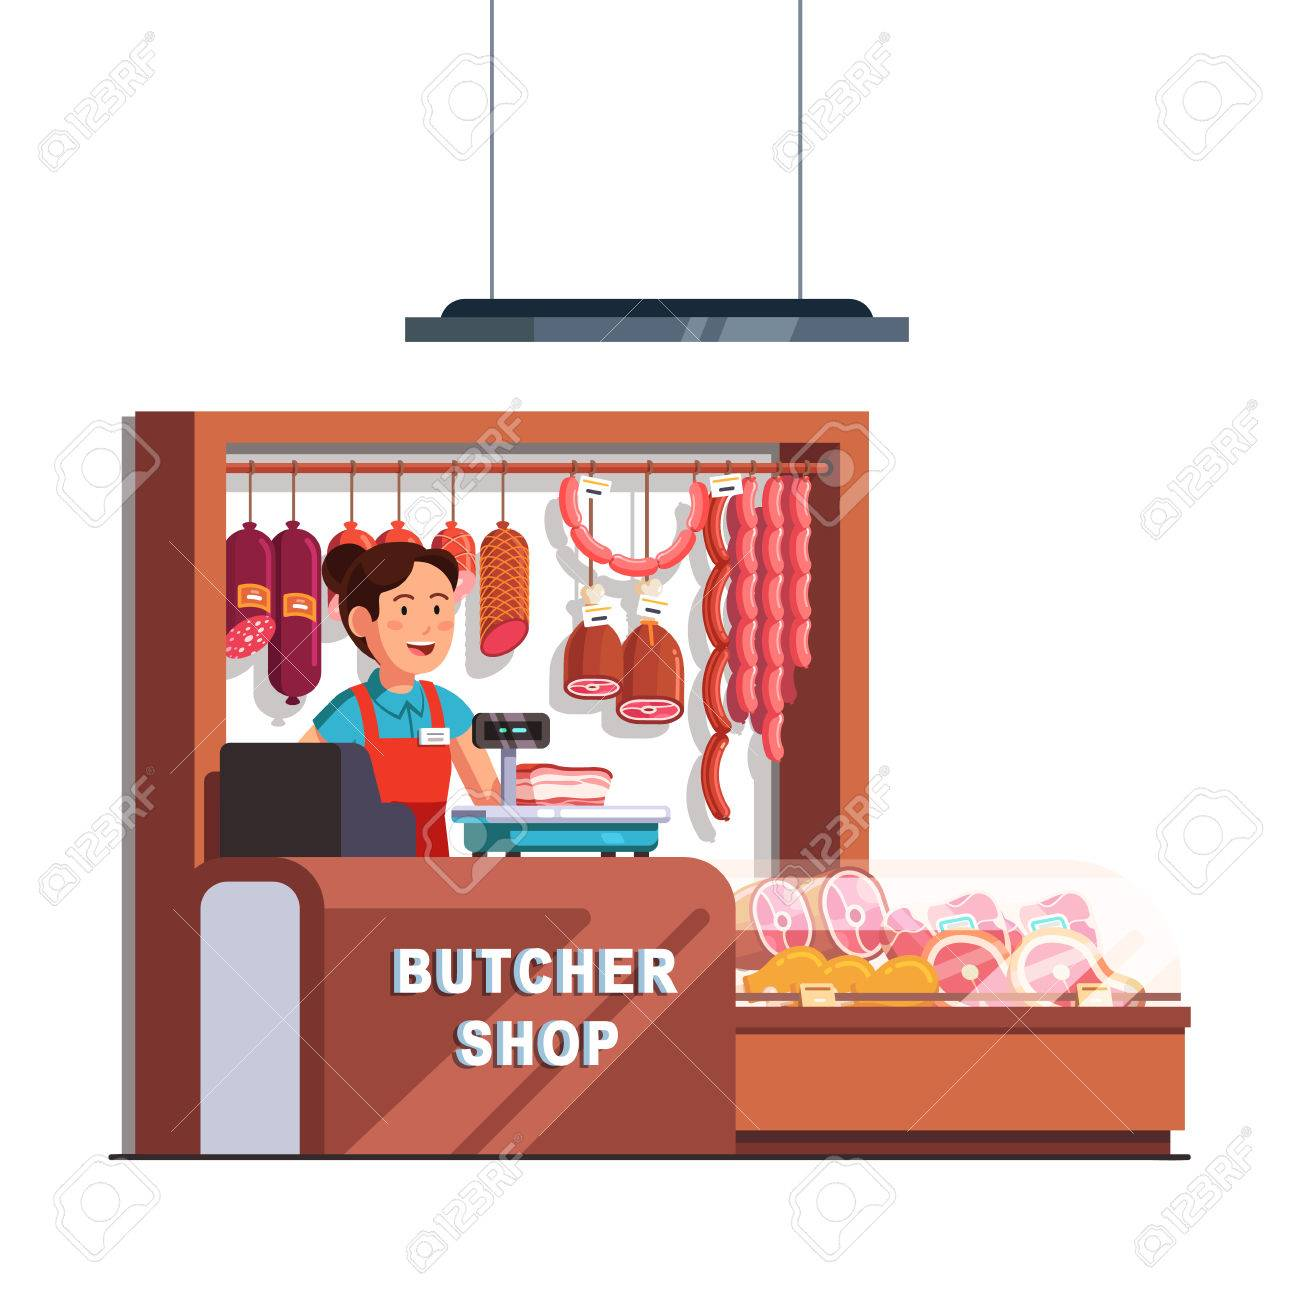 Woman at checkout clipart banner transparent stock Butcher shop owner woman at checkout counter » Clipart Station banner transparent stock